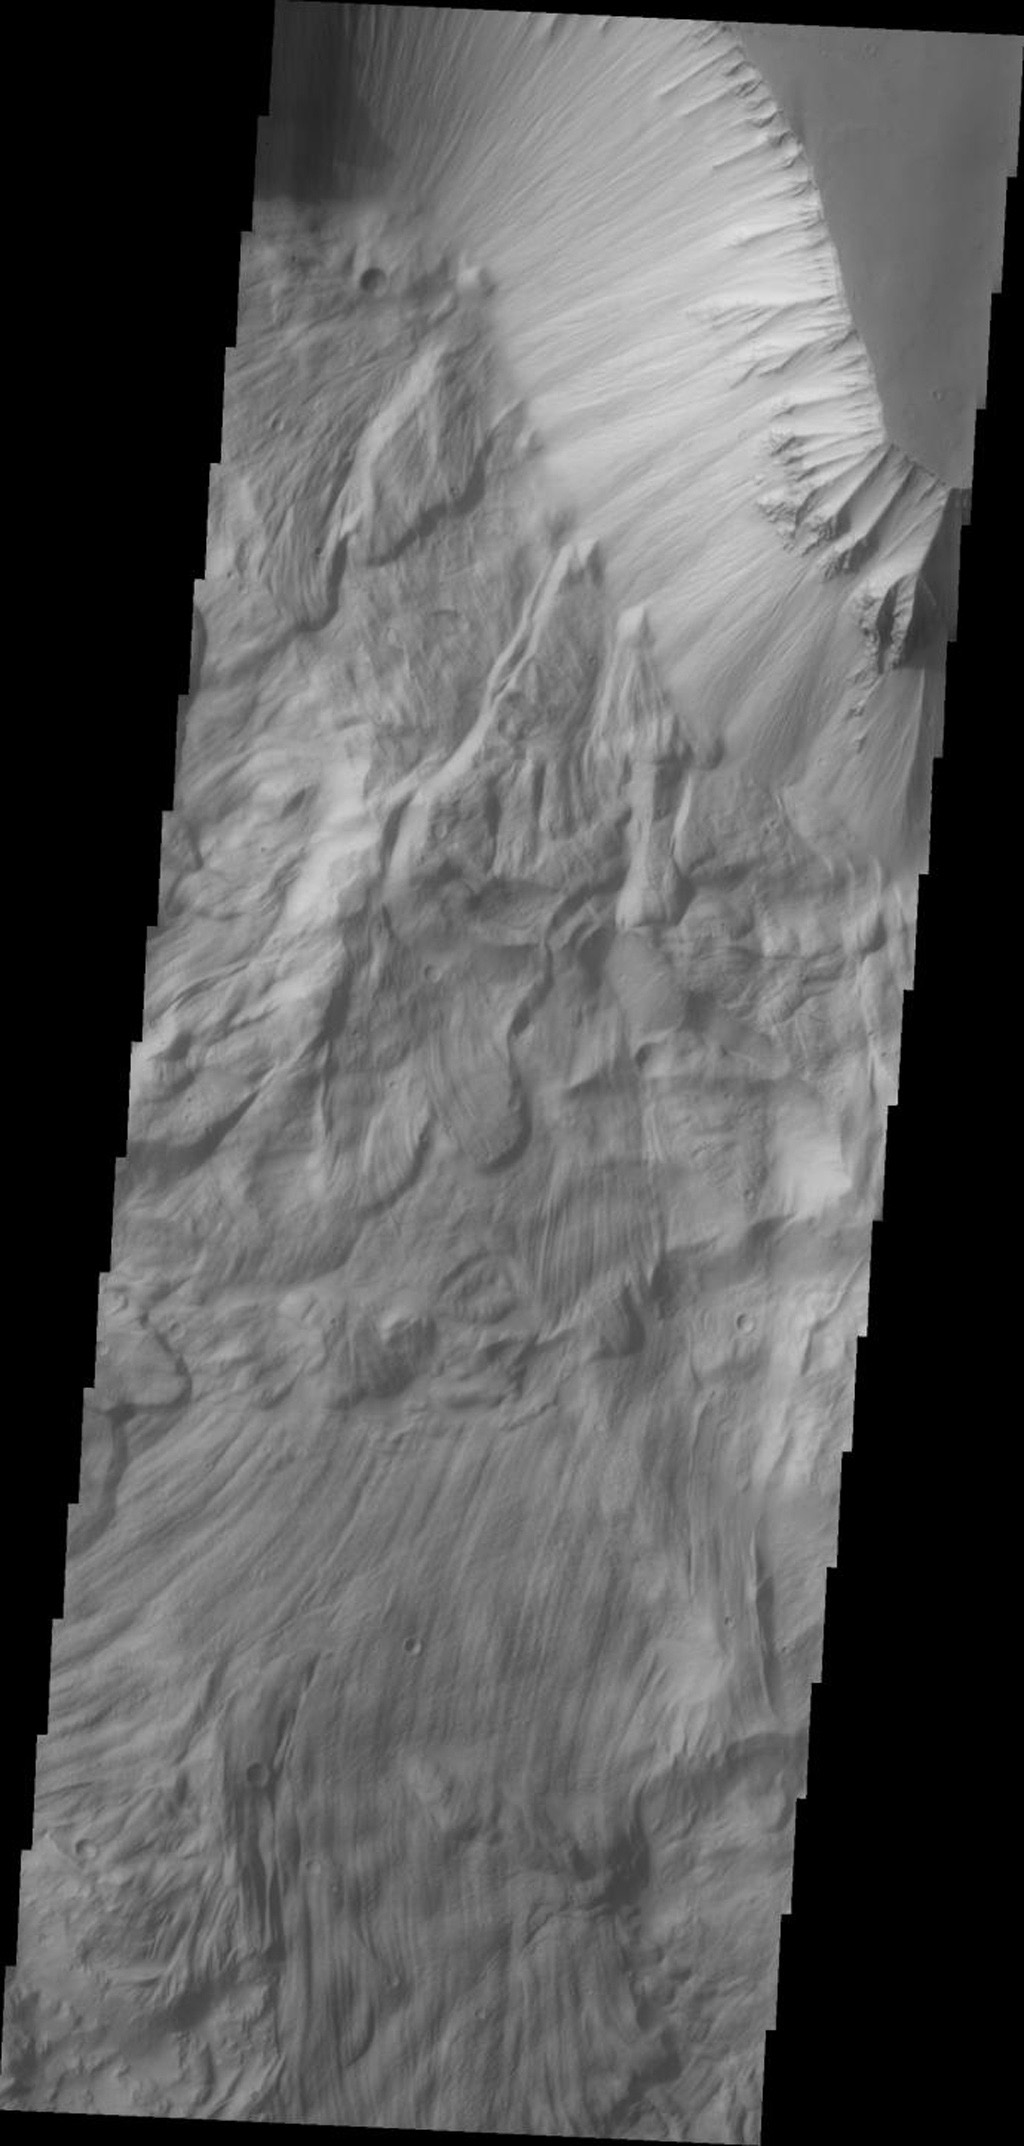 The massive, complex landslide deposits in this image from NASA's 2001 Mars Odyssey spacecraft are located on the northern slope of Ophir Chasma on Mars.